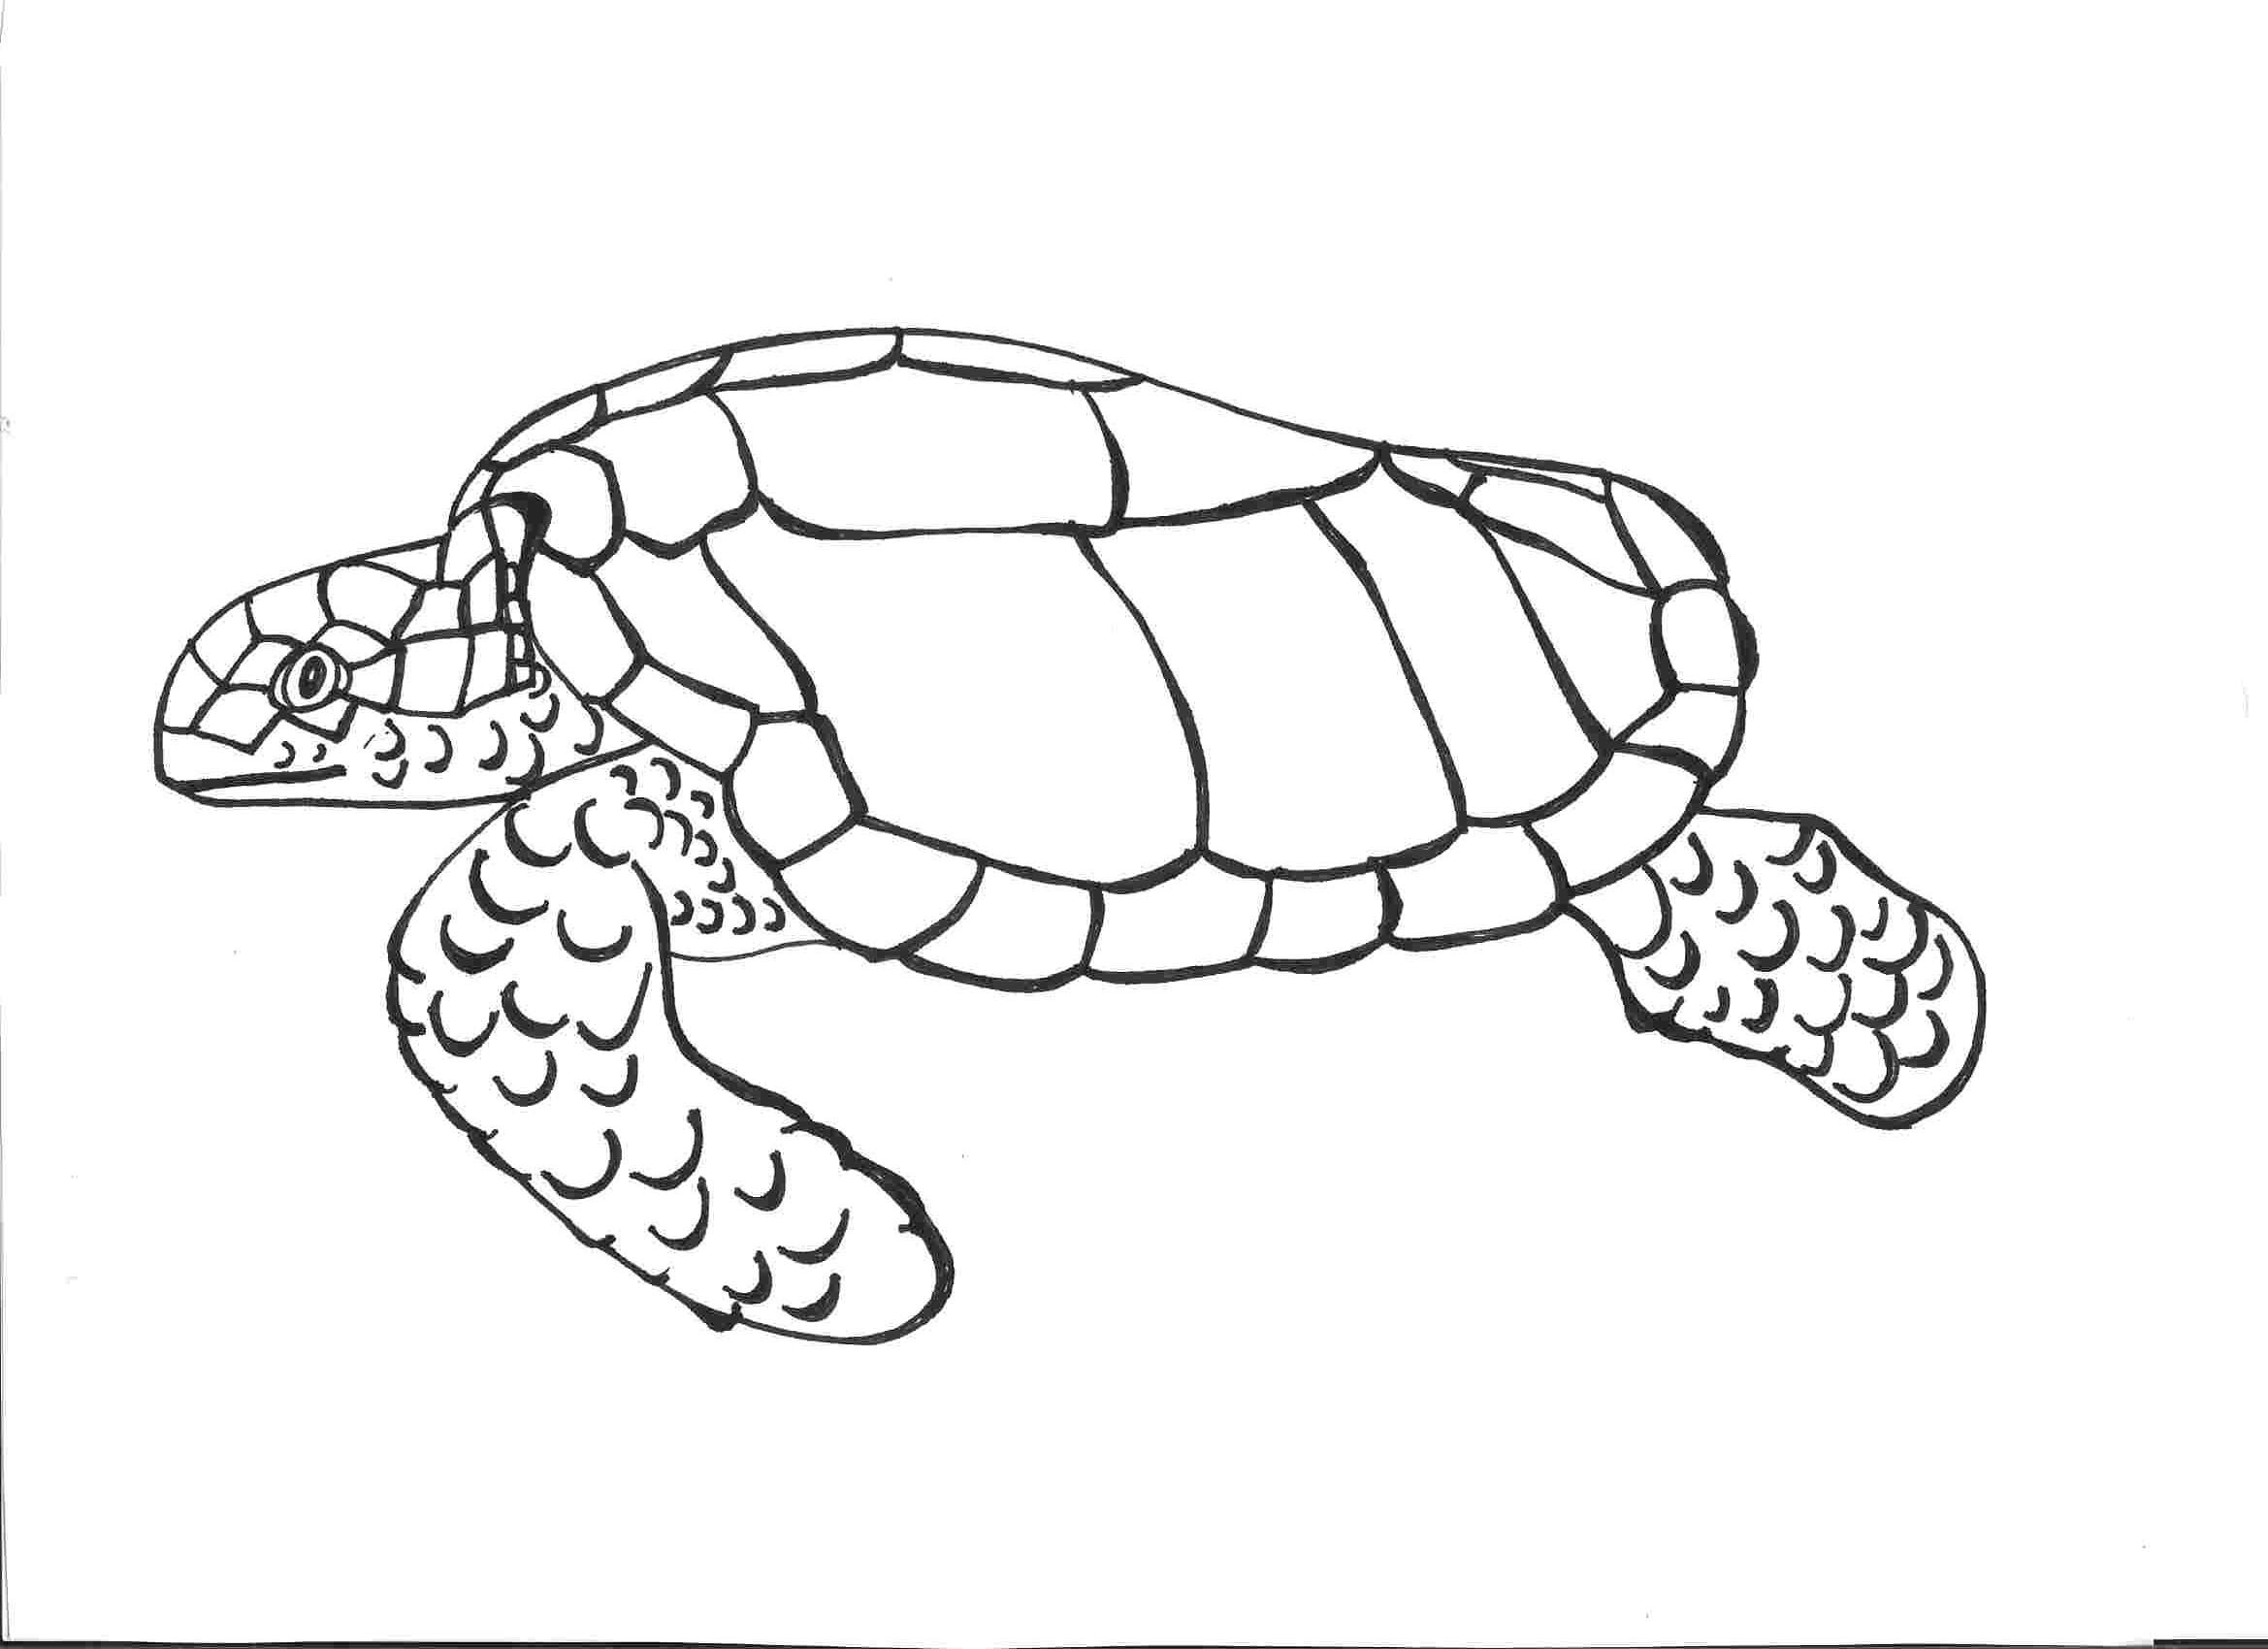 Simple Turtle Coloring Pages Ideas For Kids | Turtle ...